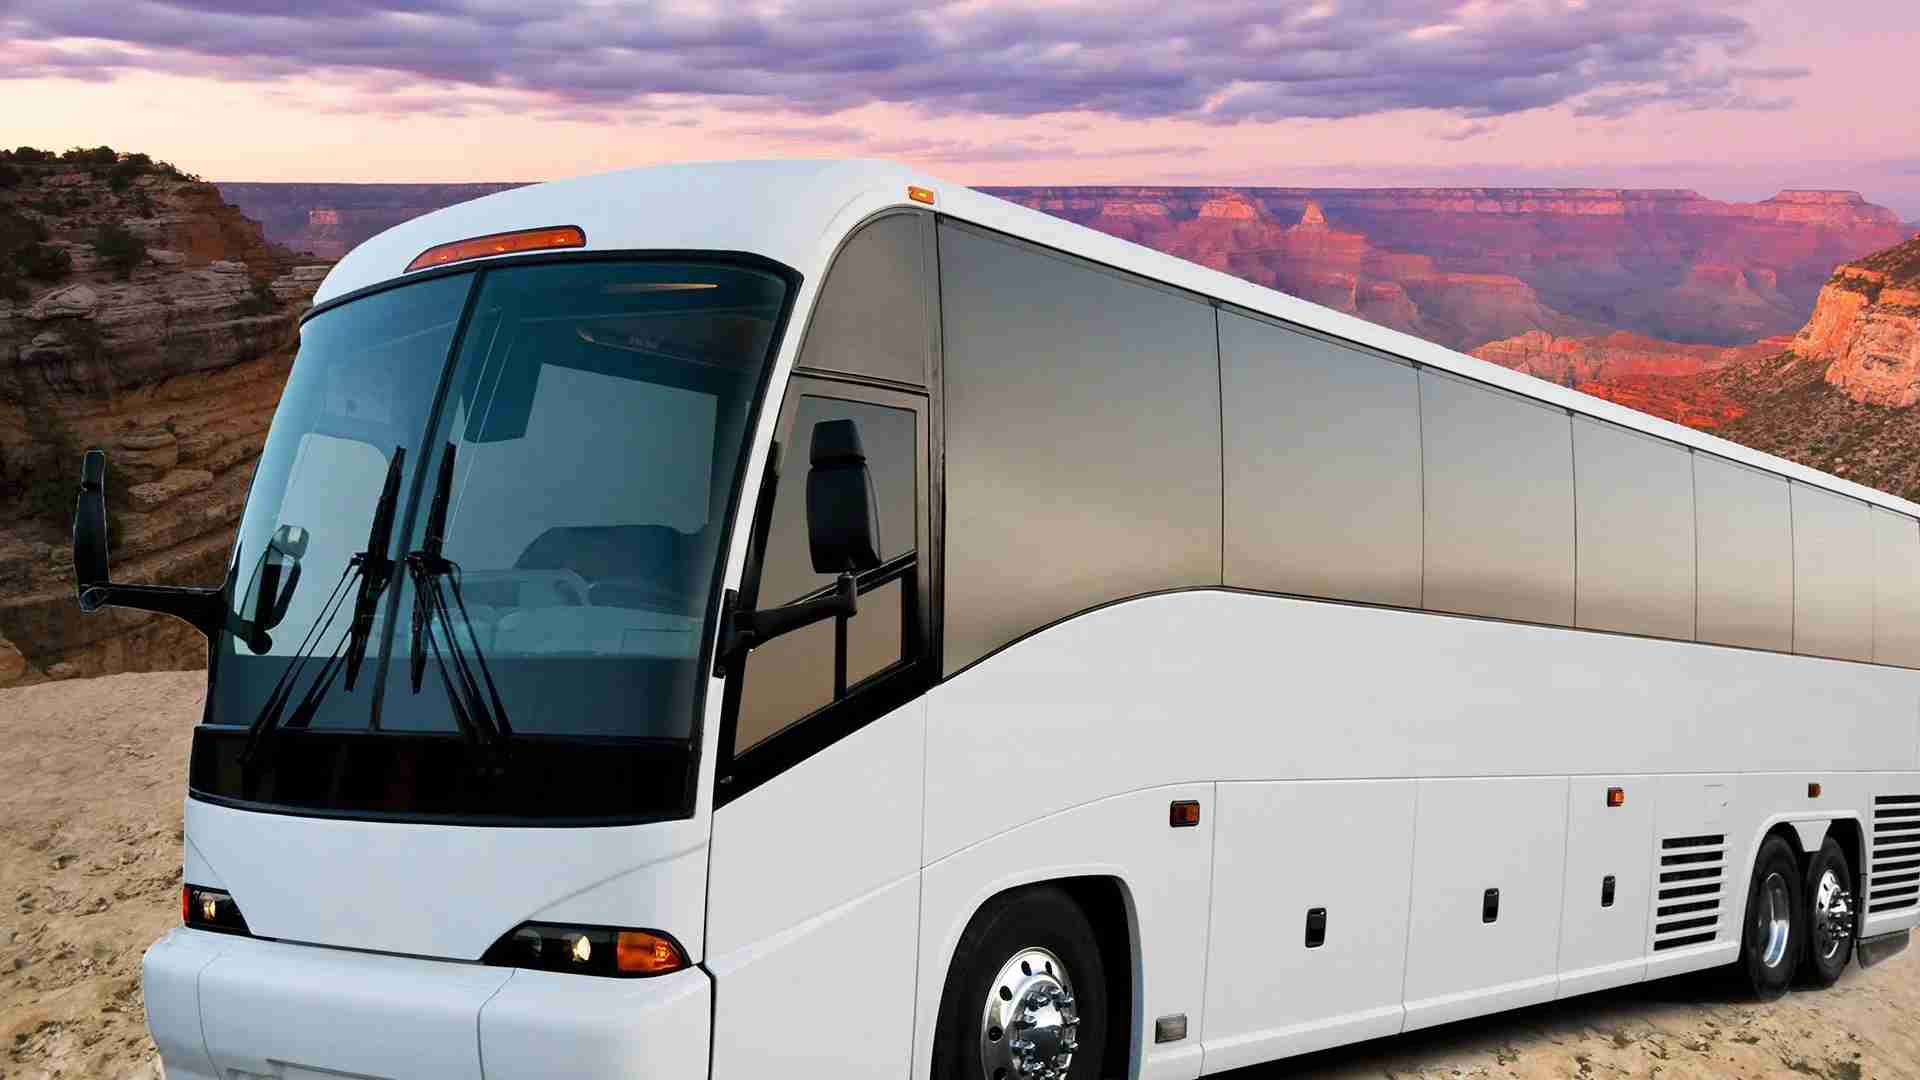 Tour companies offer luxury motorcoach rides from Las Vegas to the Grand Canyon (Photo by Papillon Grand Canyon Tours).